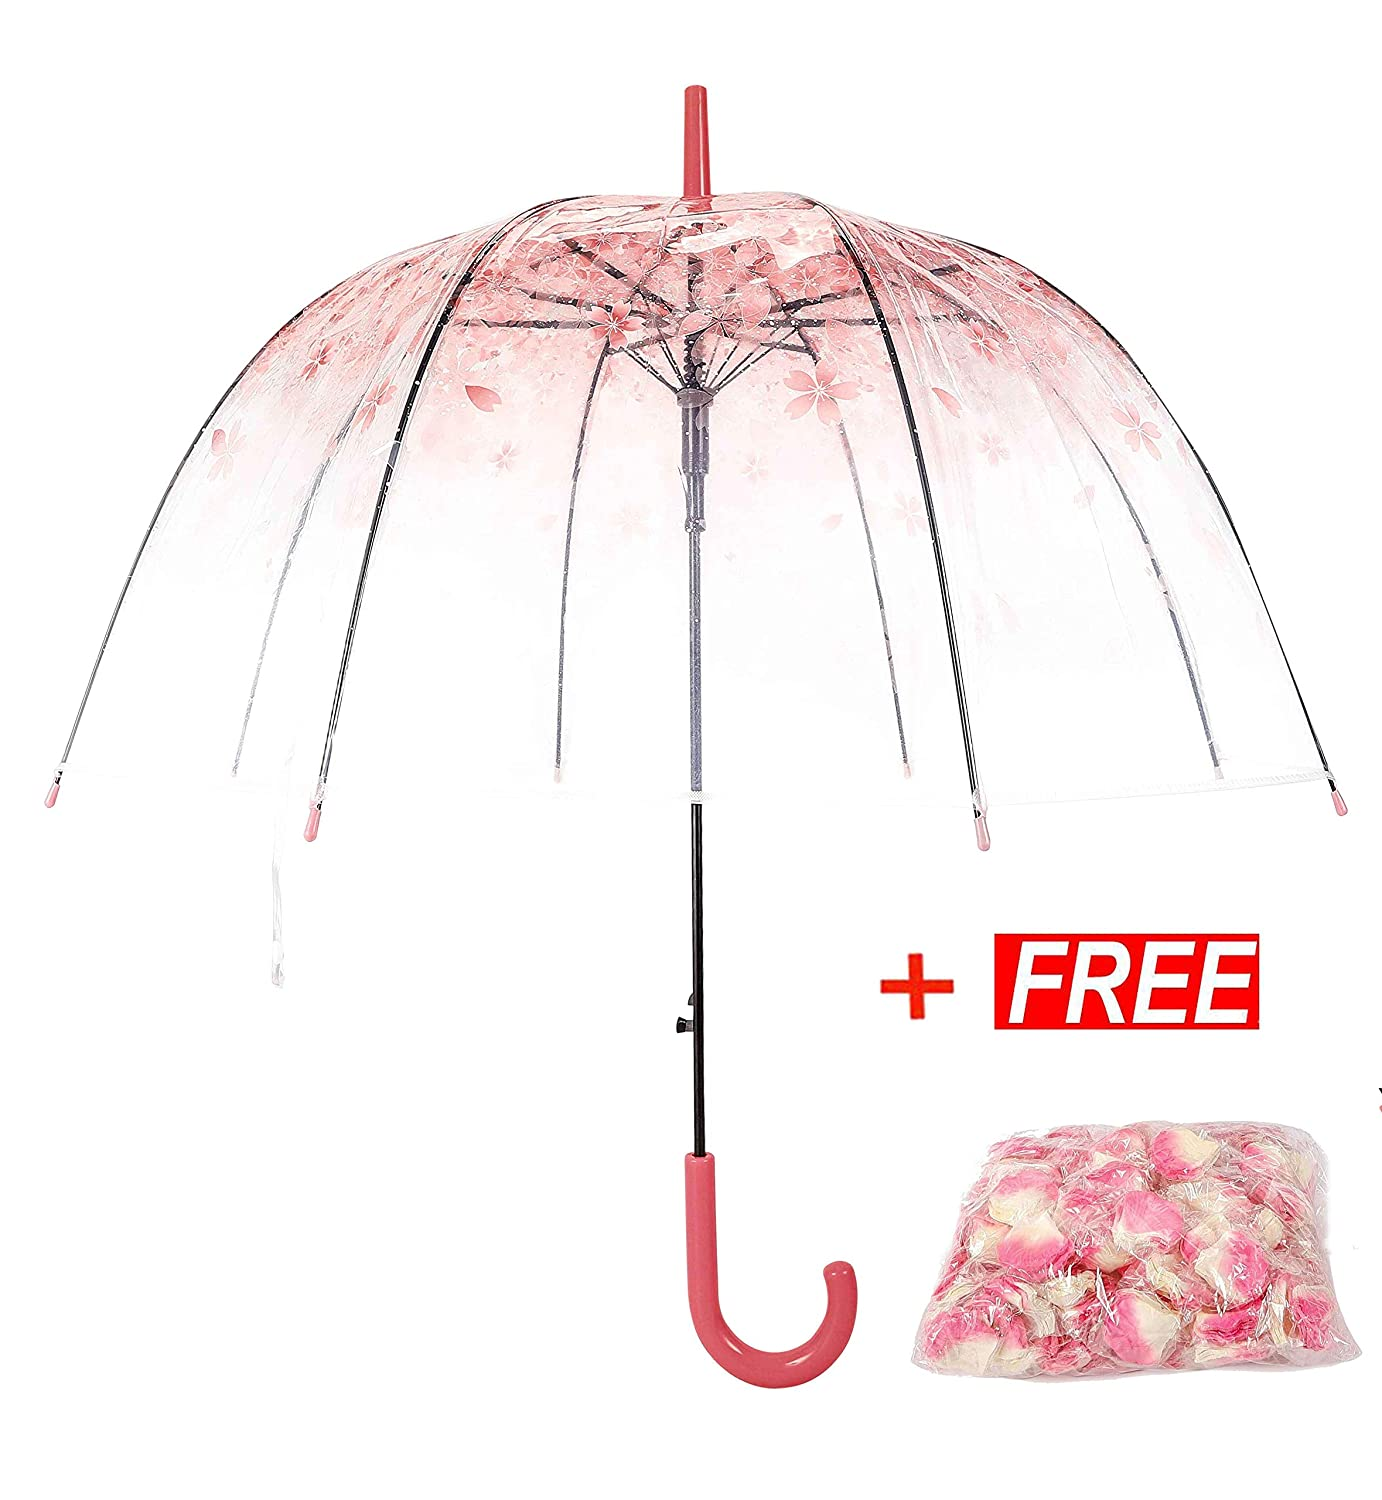 Tdogs Clear Umbrella with Free 100 Pcs Romantic Flowers,Bubble Umbrella Dome Transparent Cherry Automatic Umbrellas for Rain